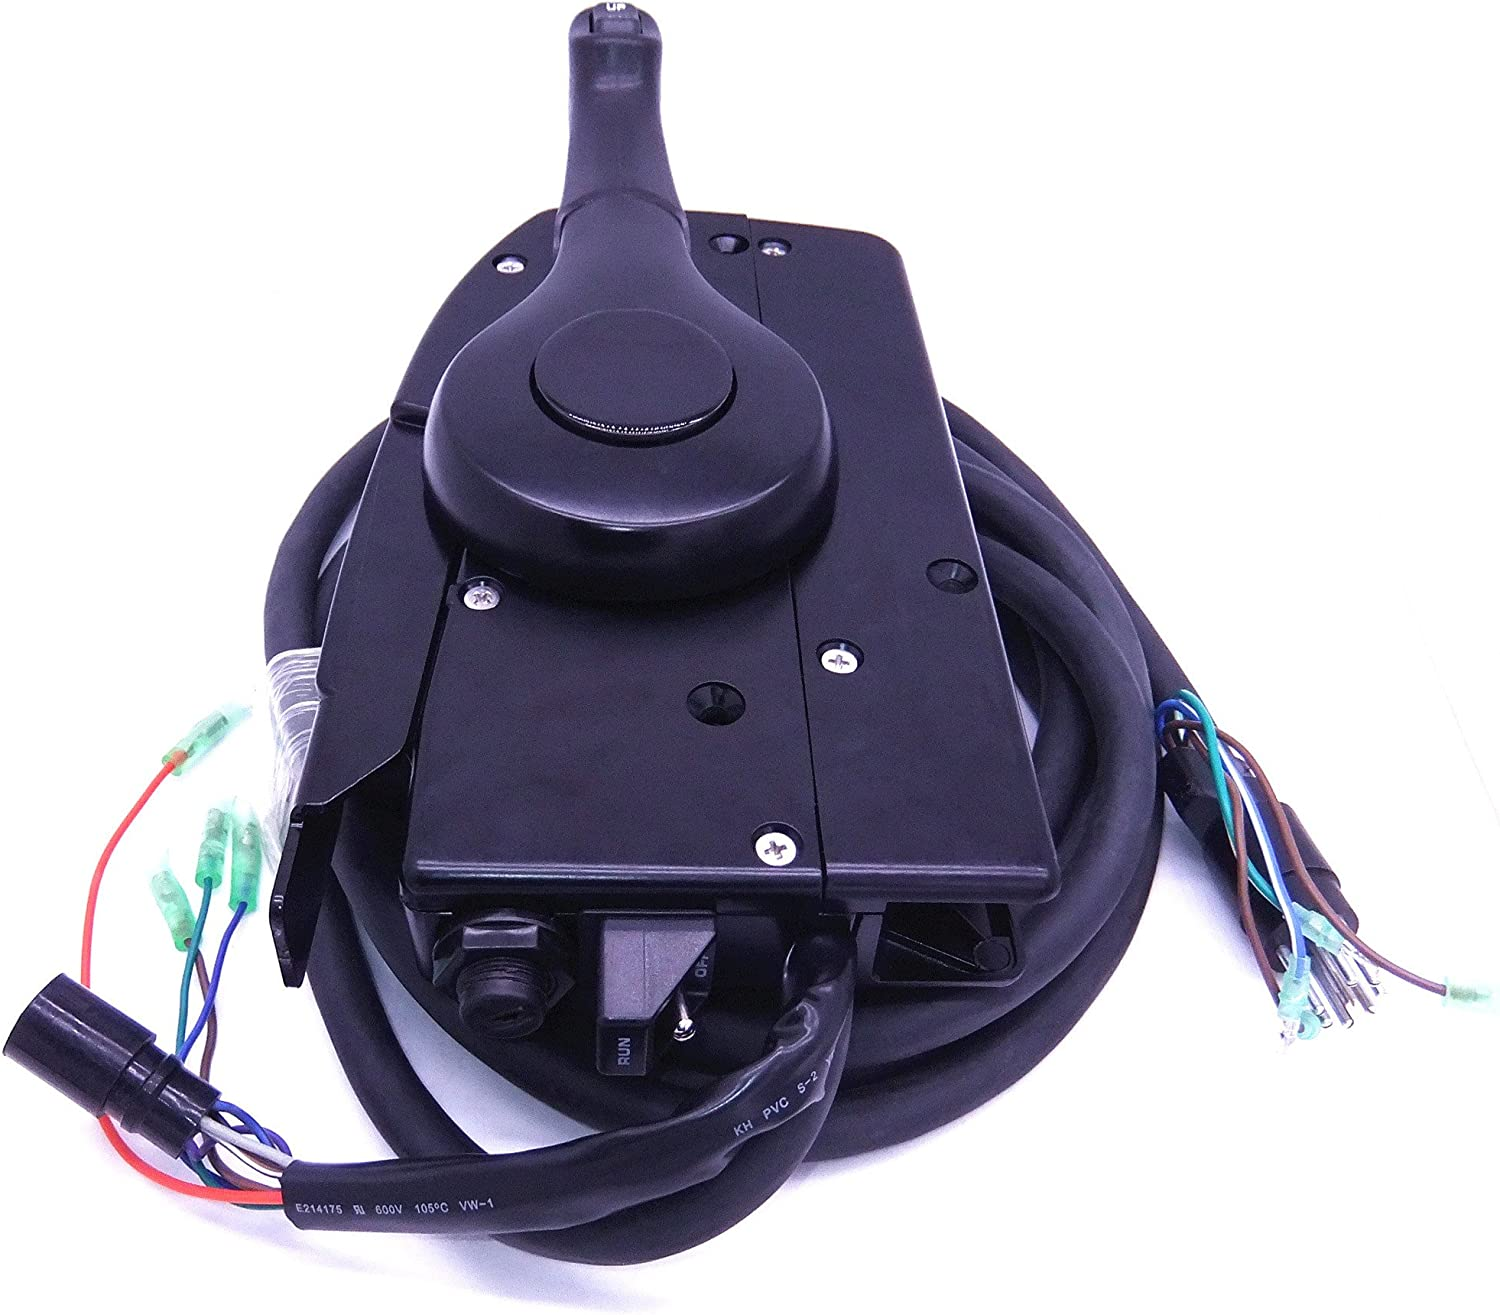 Mophorn 881170A15 Boat Motor Side Mount Remote Control Box with 8 Pin for Mercury Outboard Engine PT